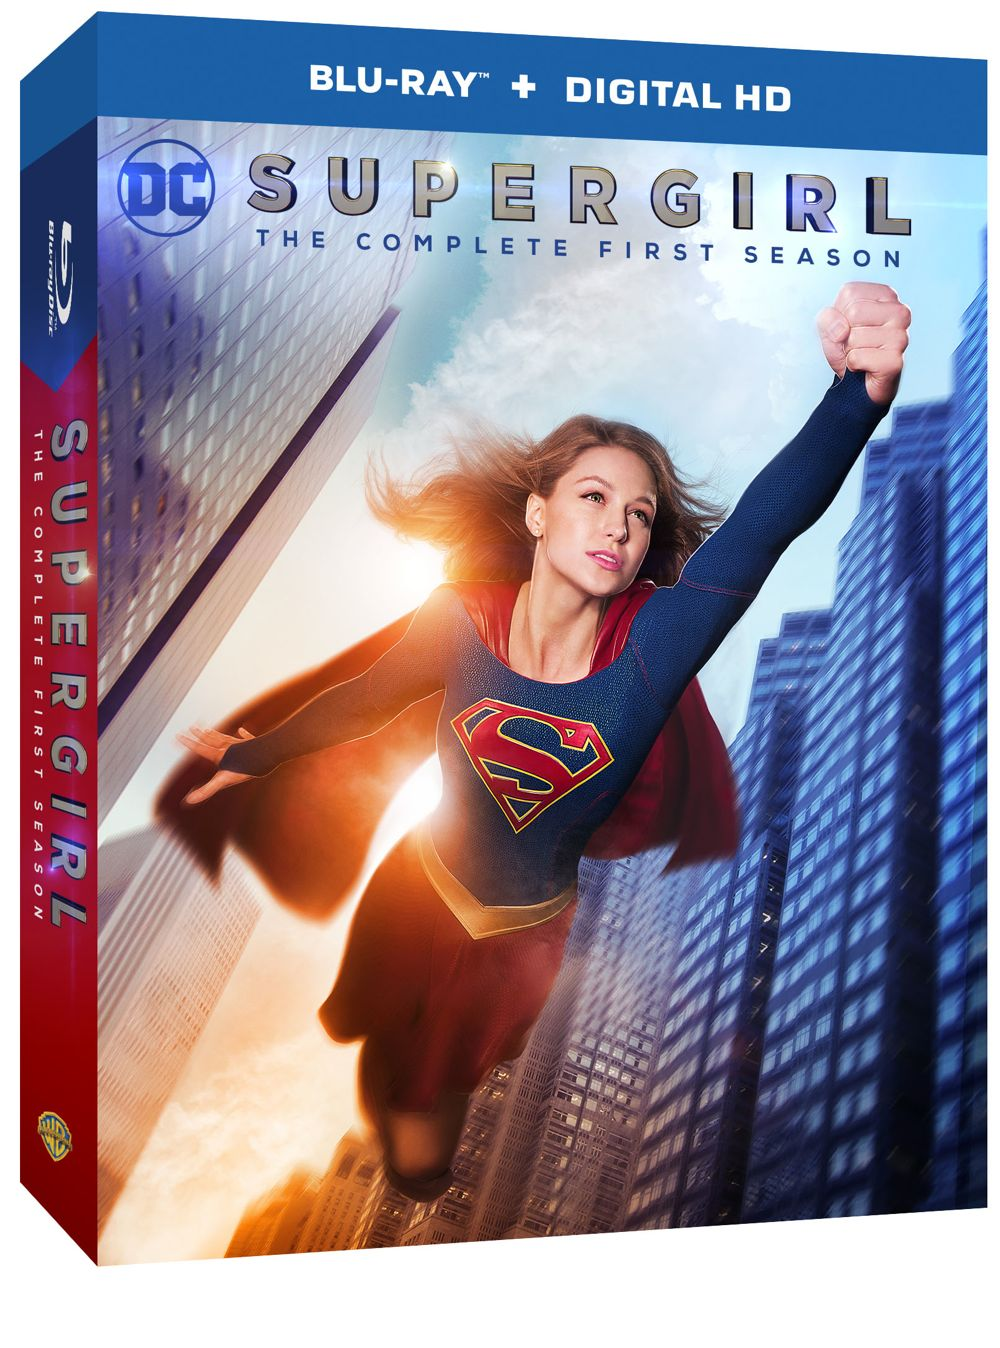 Supergirl Season 1 Bluray - 4